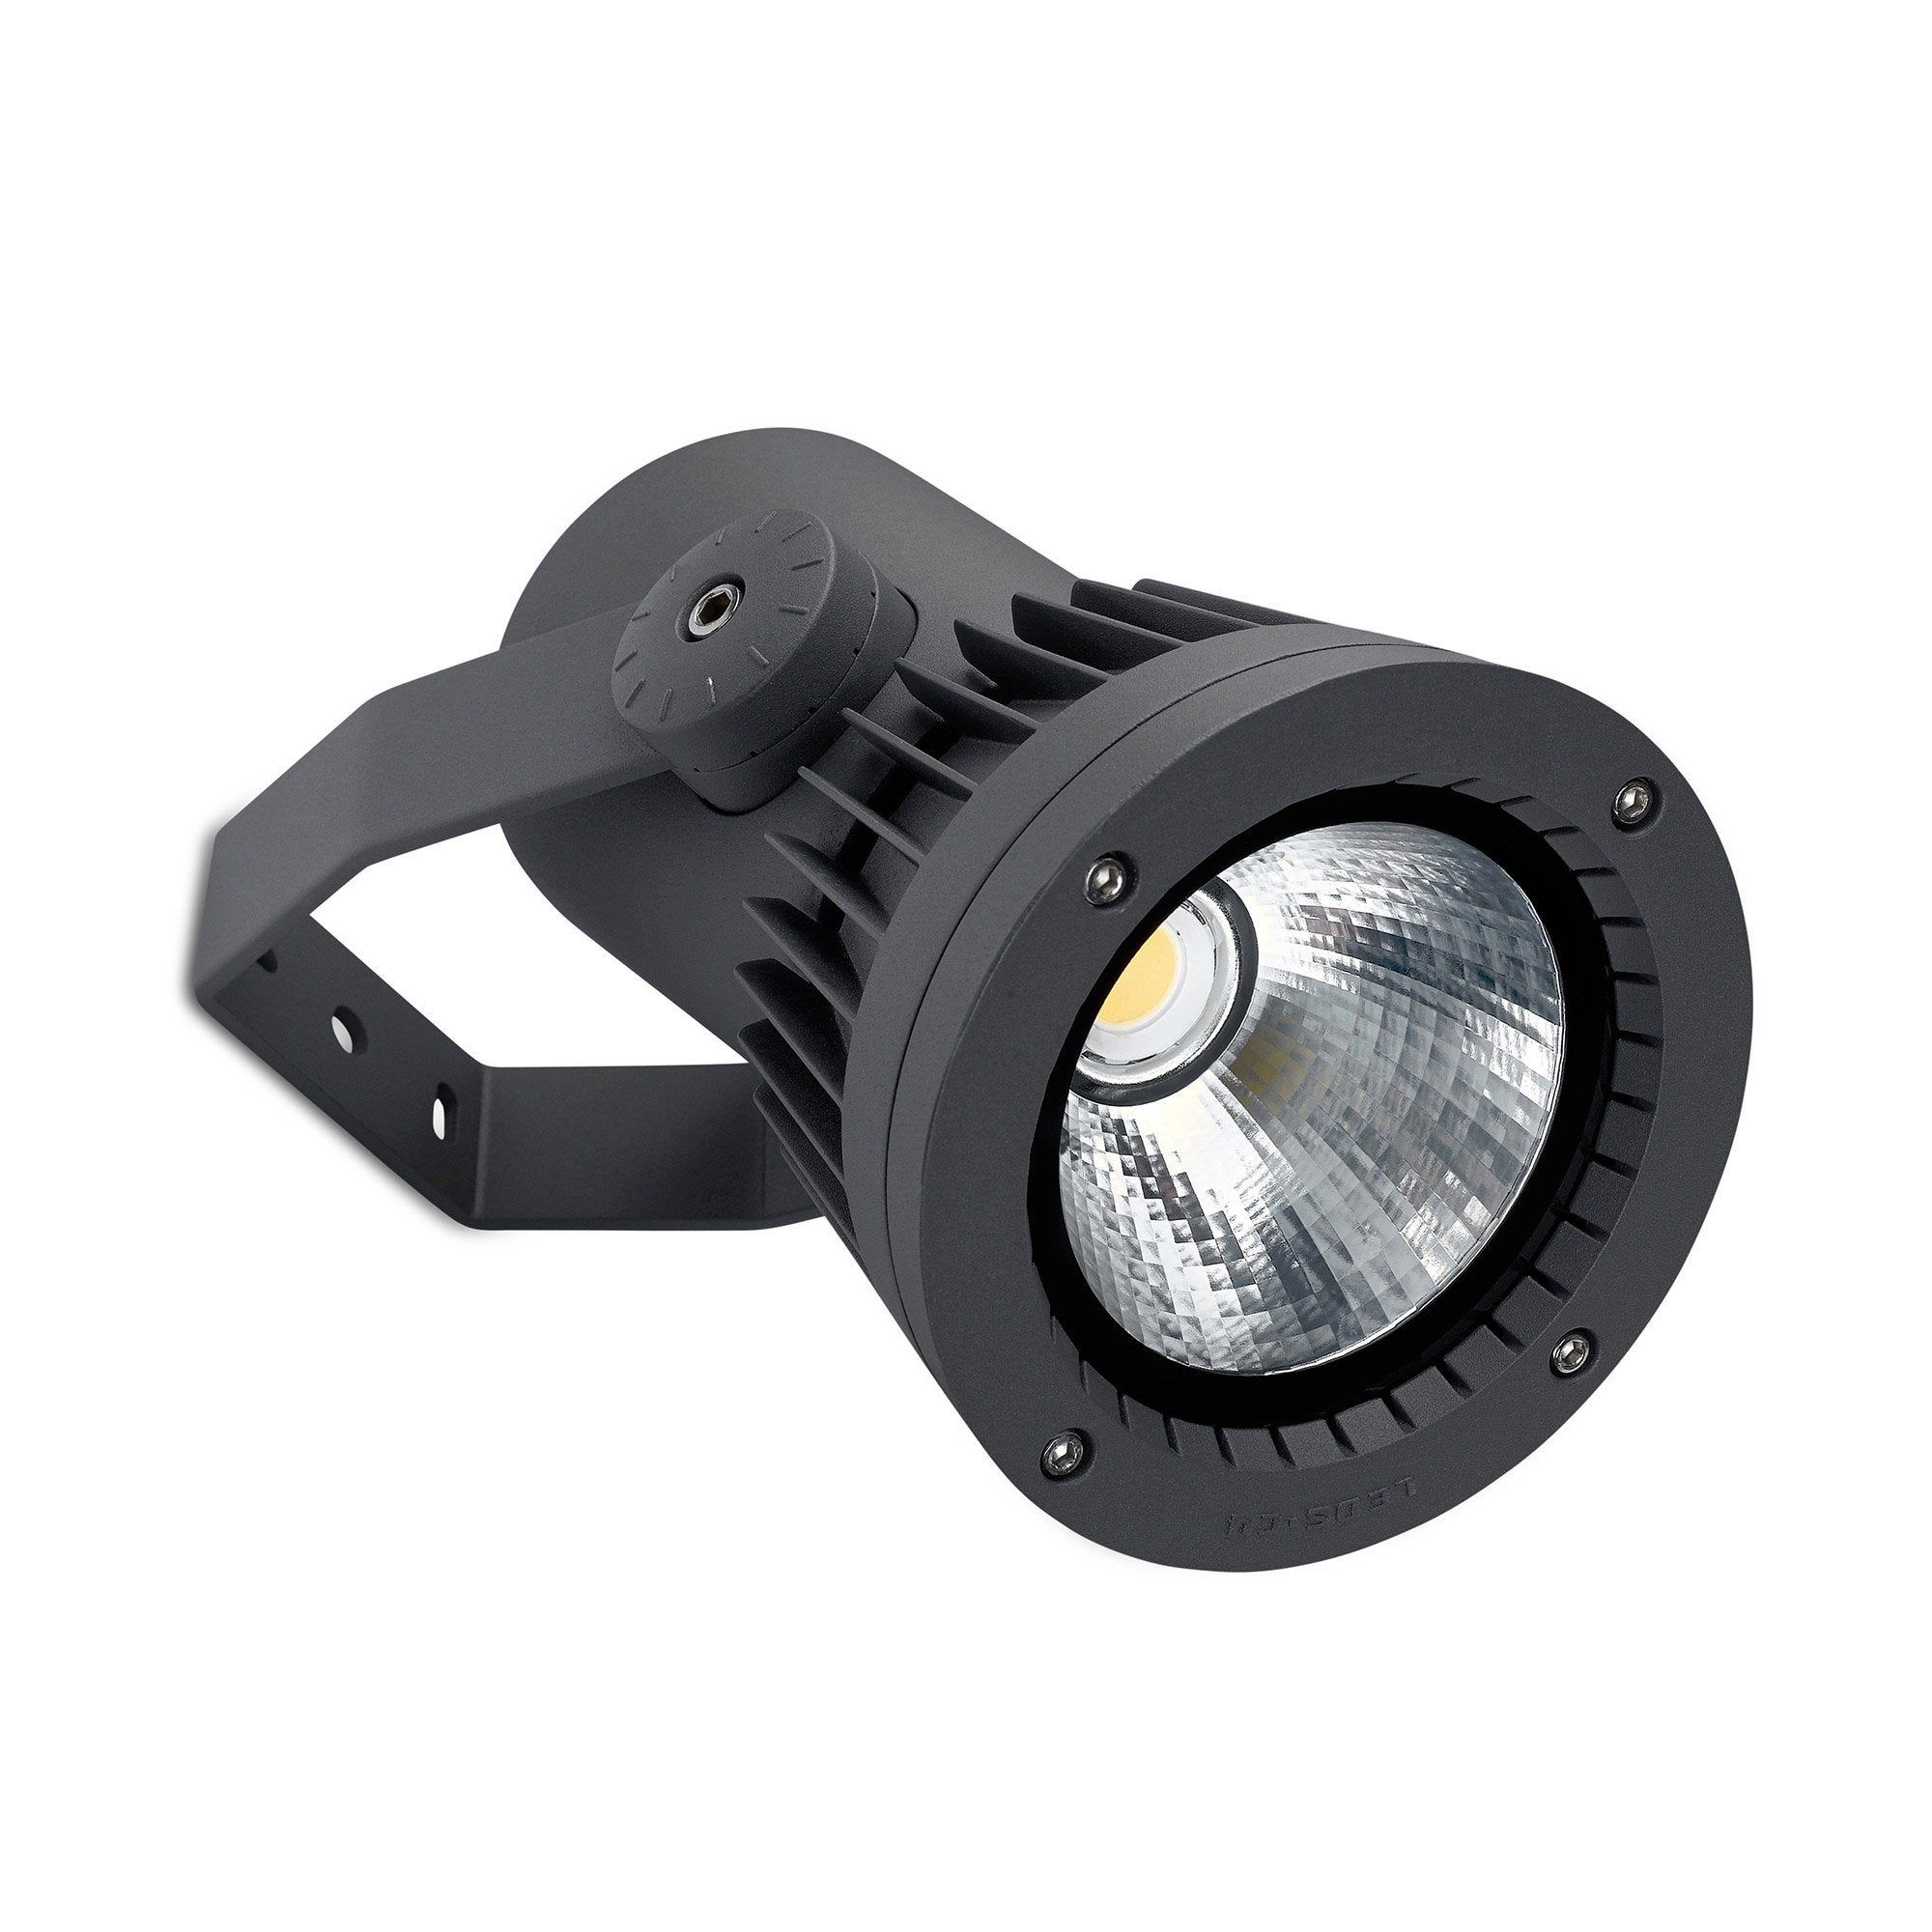 Projecteur Exterieur Led Integree 3804 Lm Gris Hubble Cob Projecteur Exterieur Projecteur Et Led